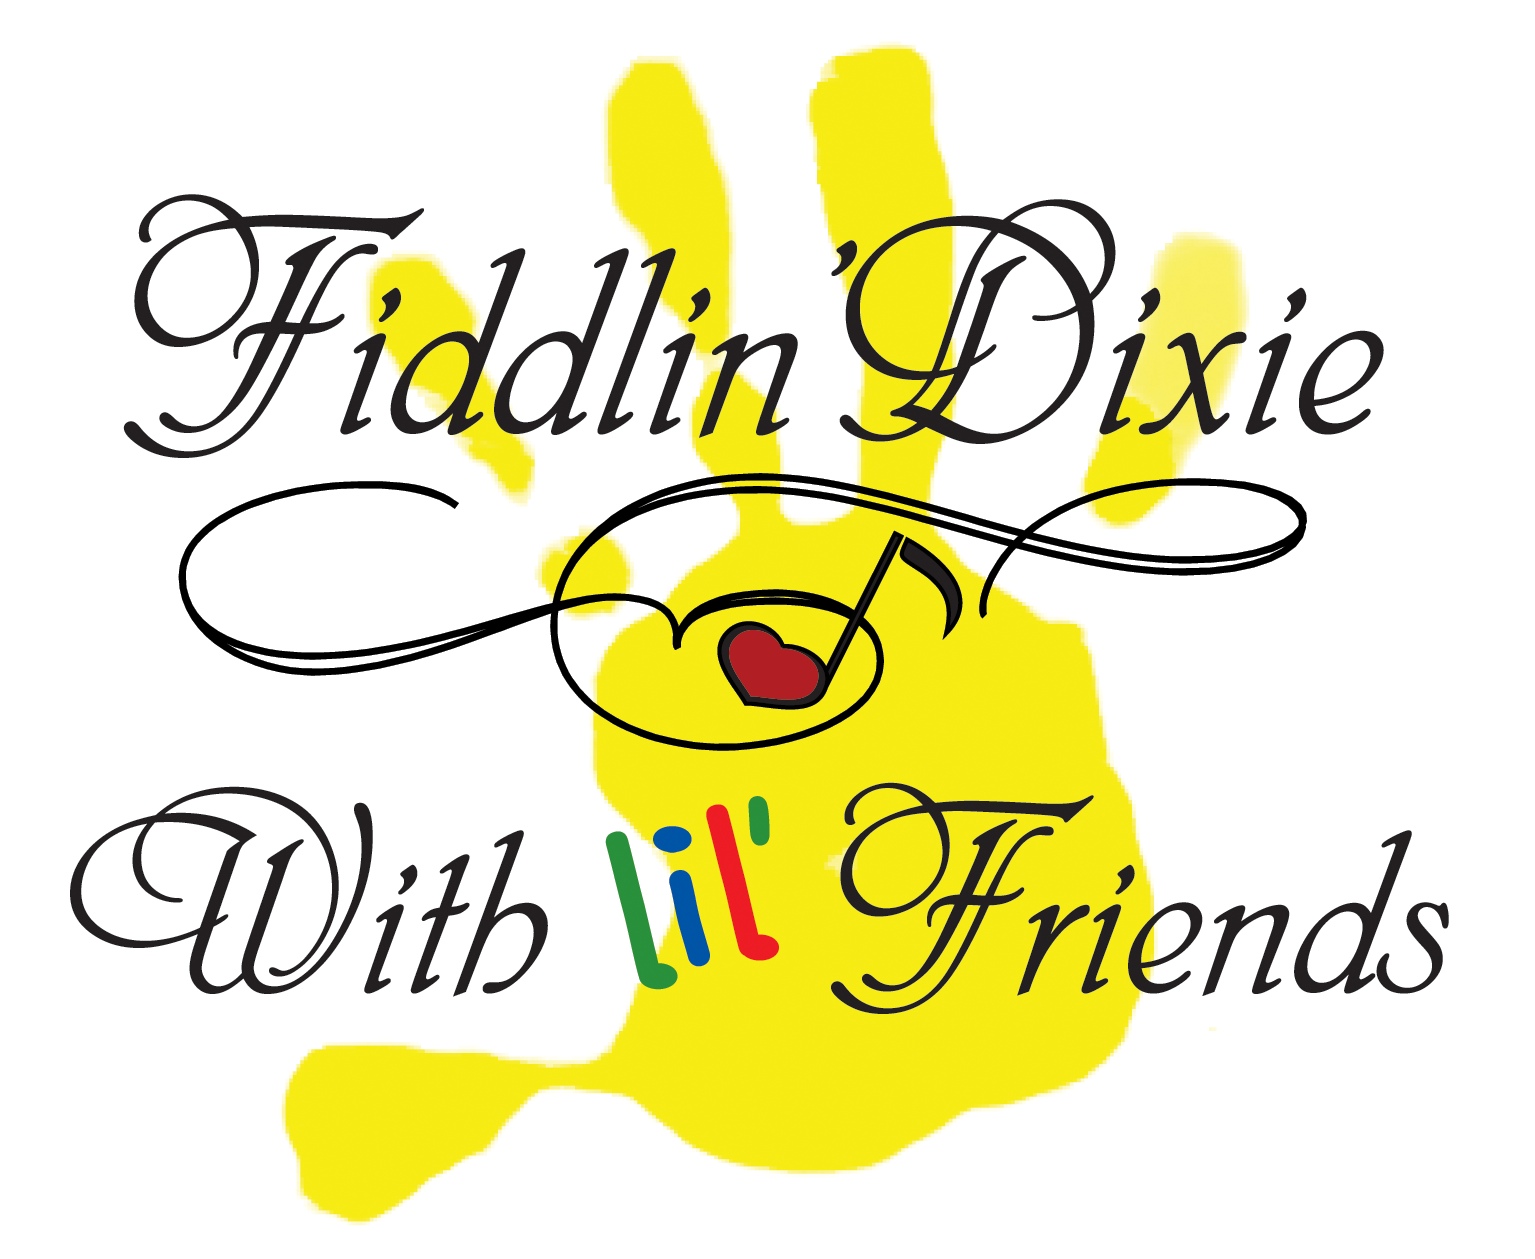 Fiddlin' Dixie with Lil Friends